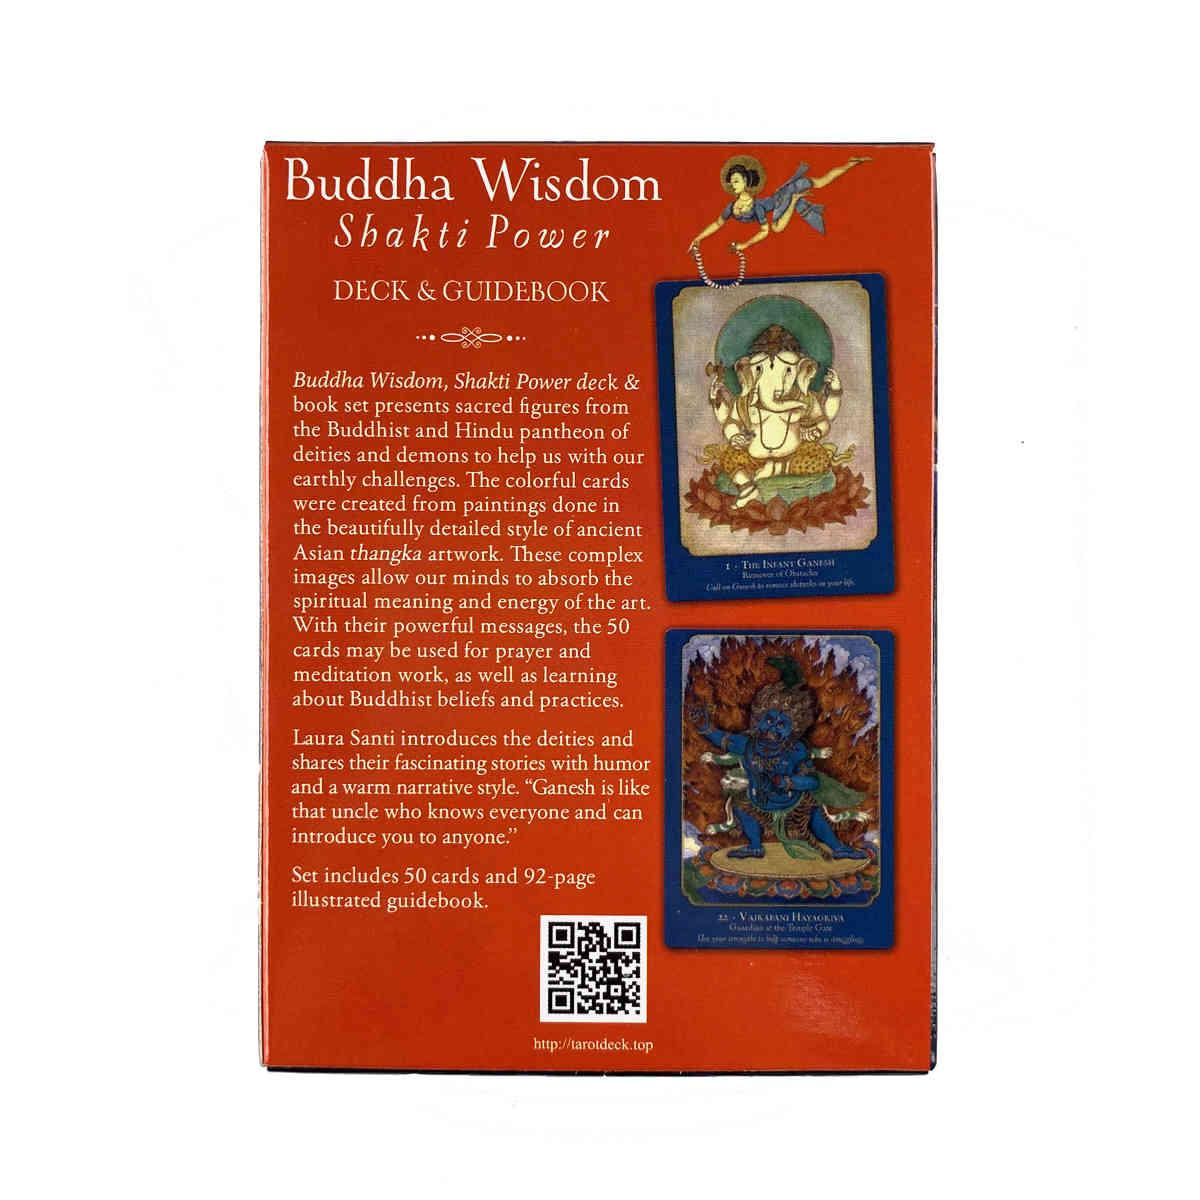 Buddha Wisdom Shakti Power Oracles Card Leisure Party Table Game High Quality Fortune-telling Prophecy Tarot Deck With Guide Book s1A1Y